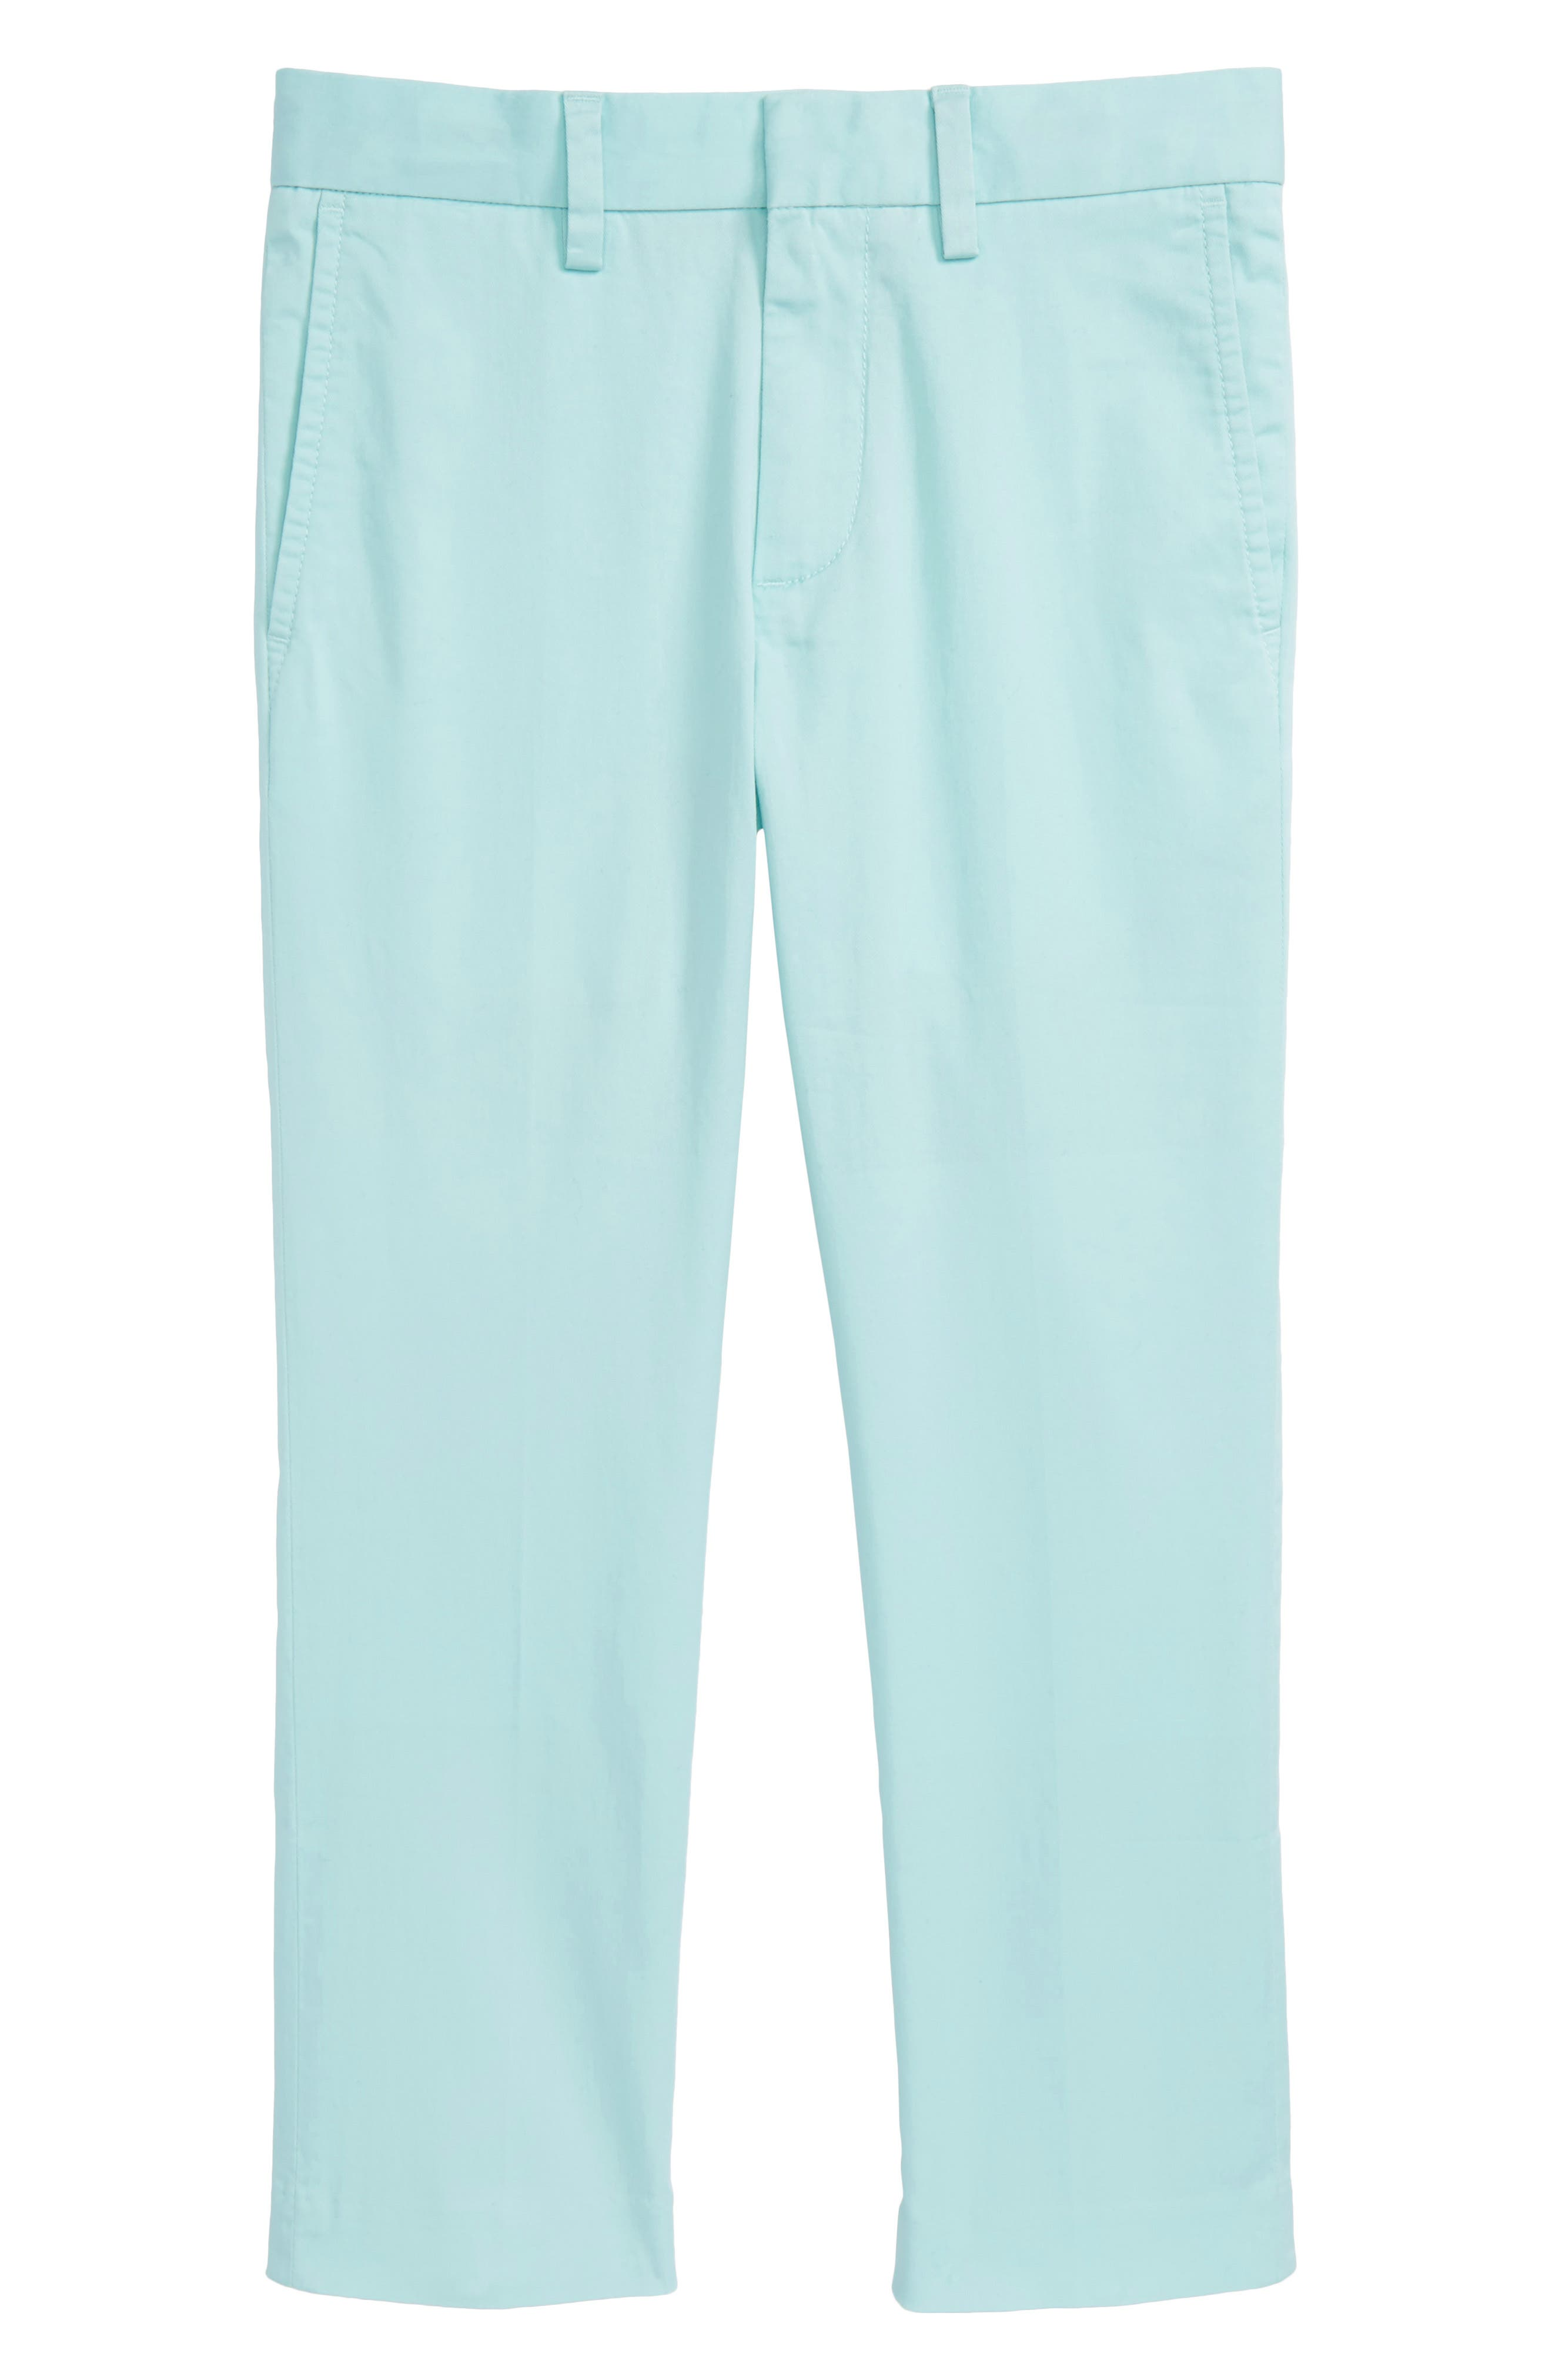 Alternate Image 1 Selected - crewcuts by J.Crew Slim Fit Stretch Chino Pants (Toddler Boys, Little Boys & Big Boys)